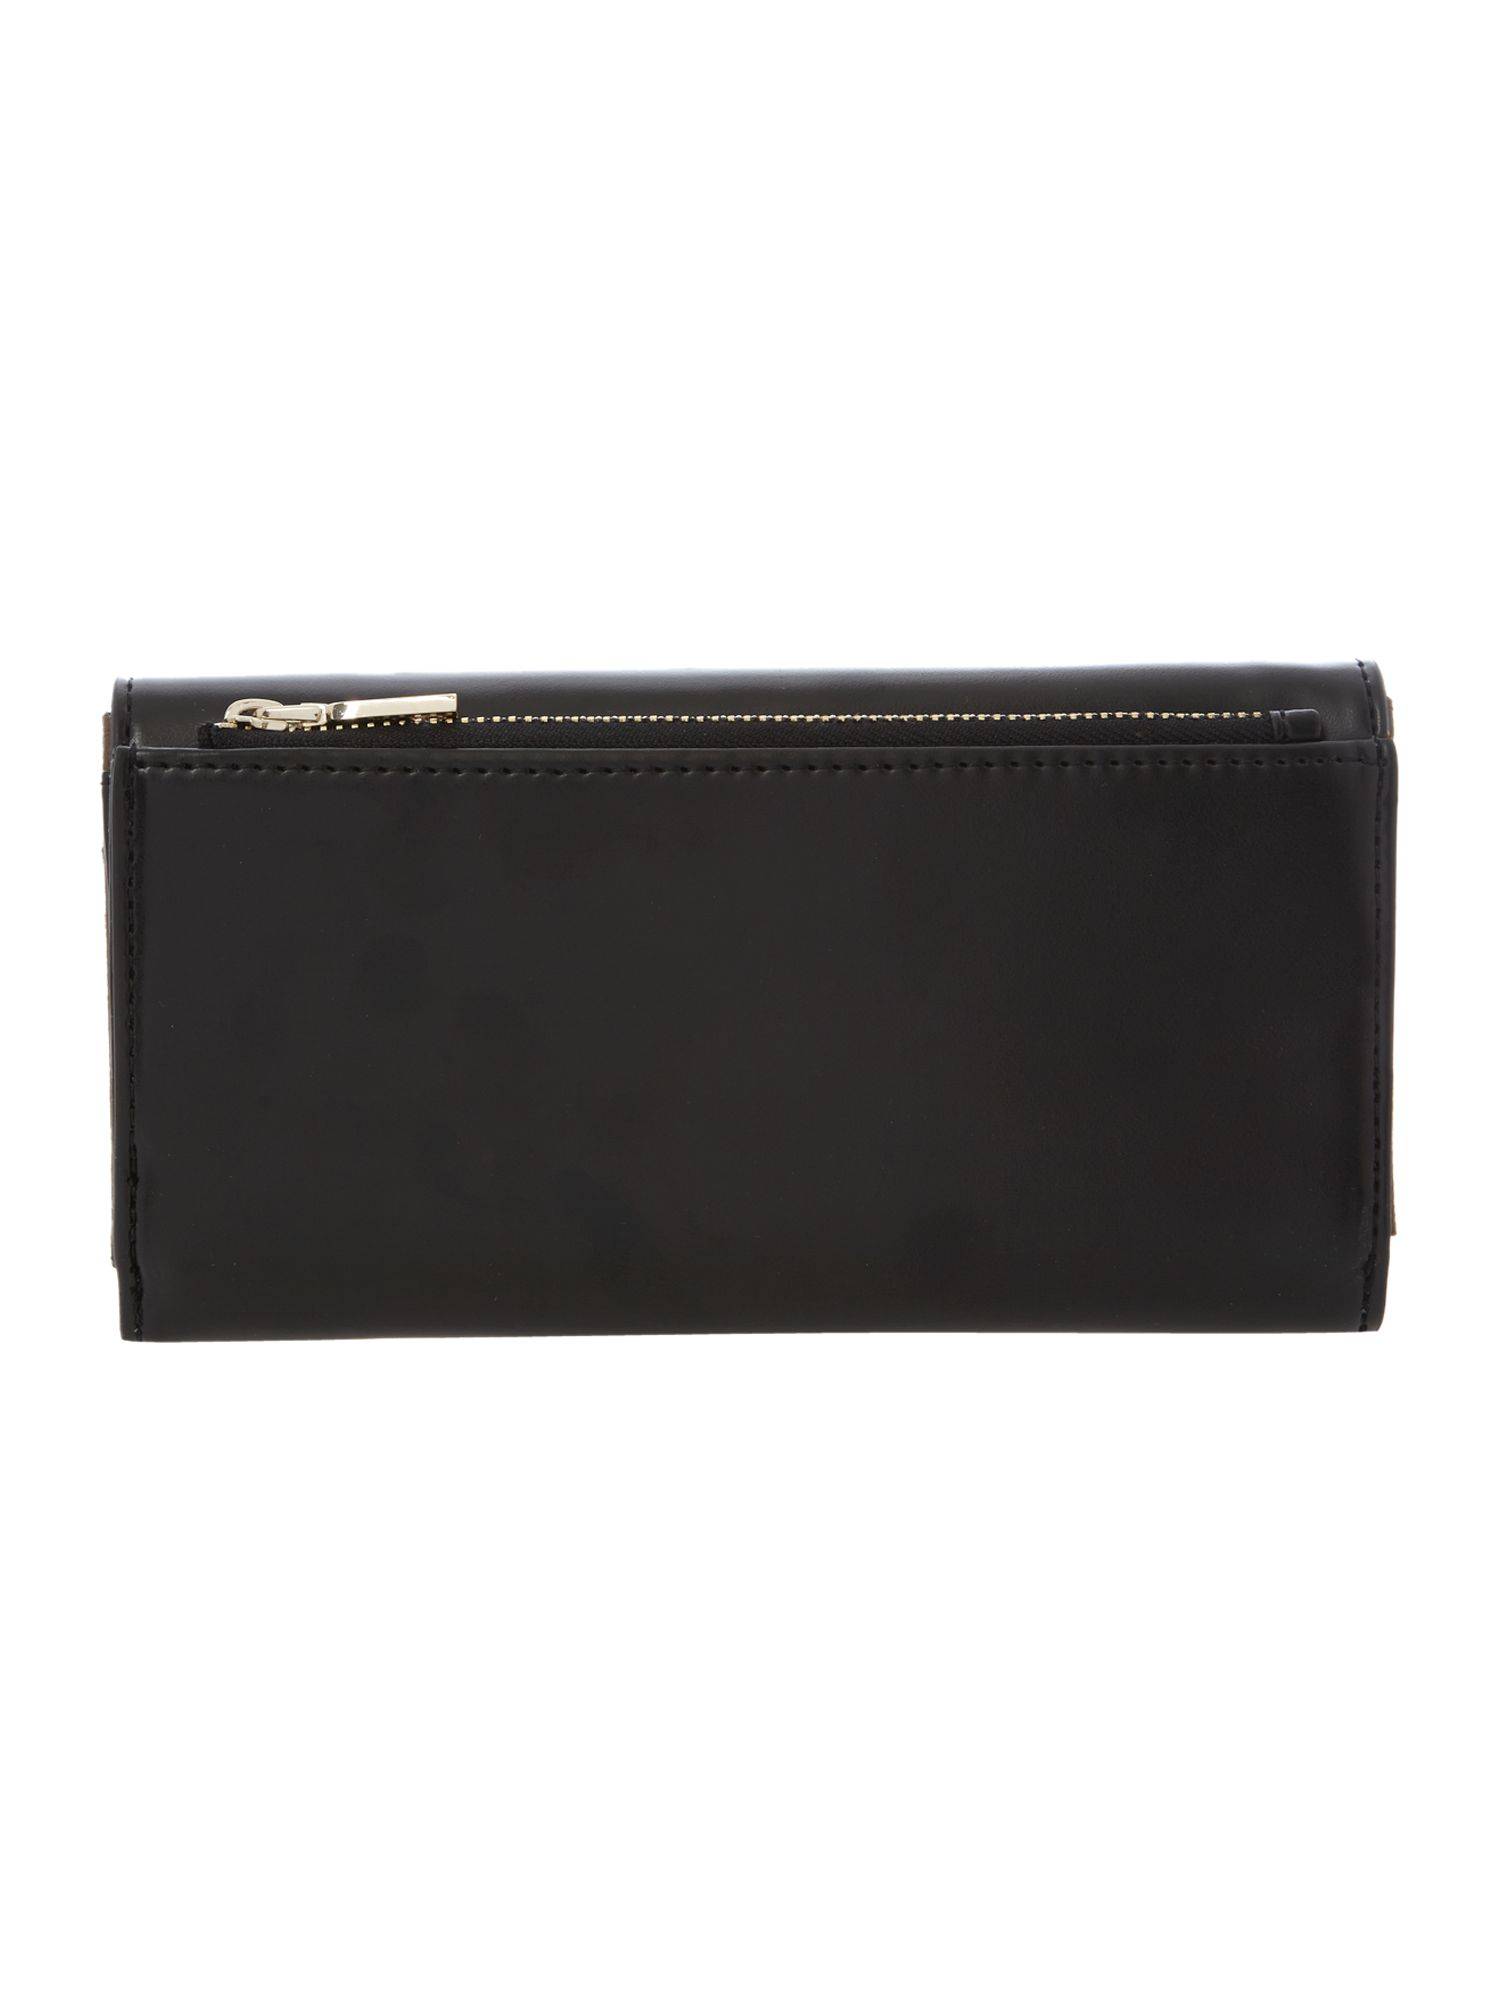 Black large frame saffiano flapover purse